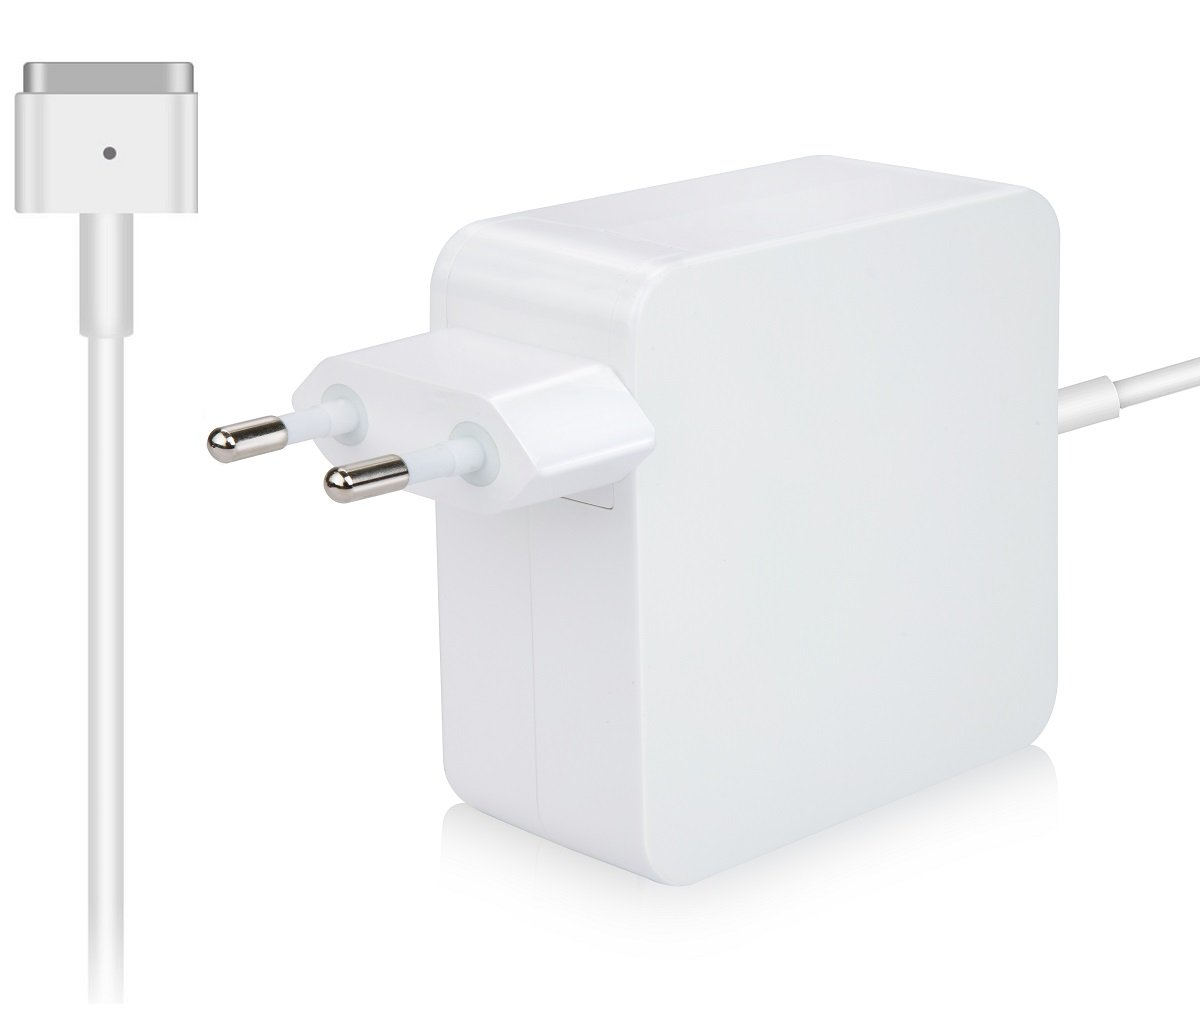 Jayee Adaptador de Corriente MagSafe 2 de 45W para Apple MacBook Air de 11 Pulgadas y 13 Pulgadas - Modelos Despúes de Junio de 2012